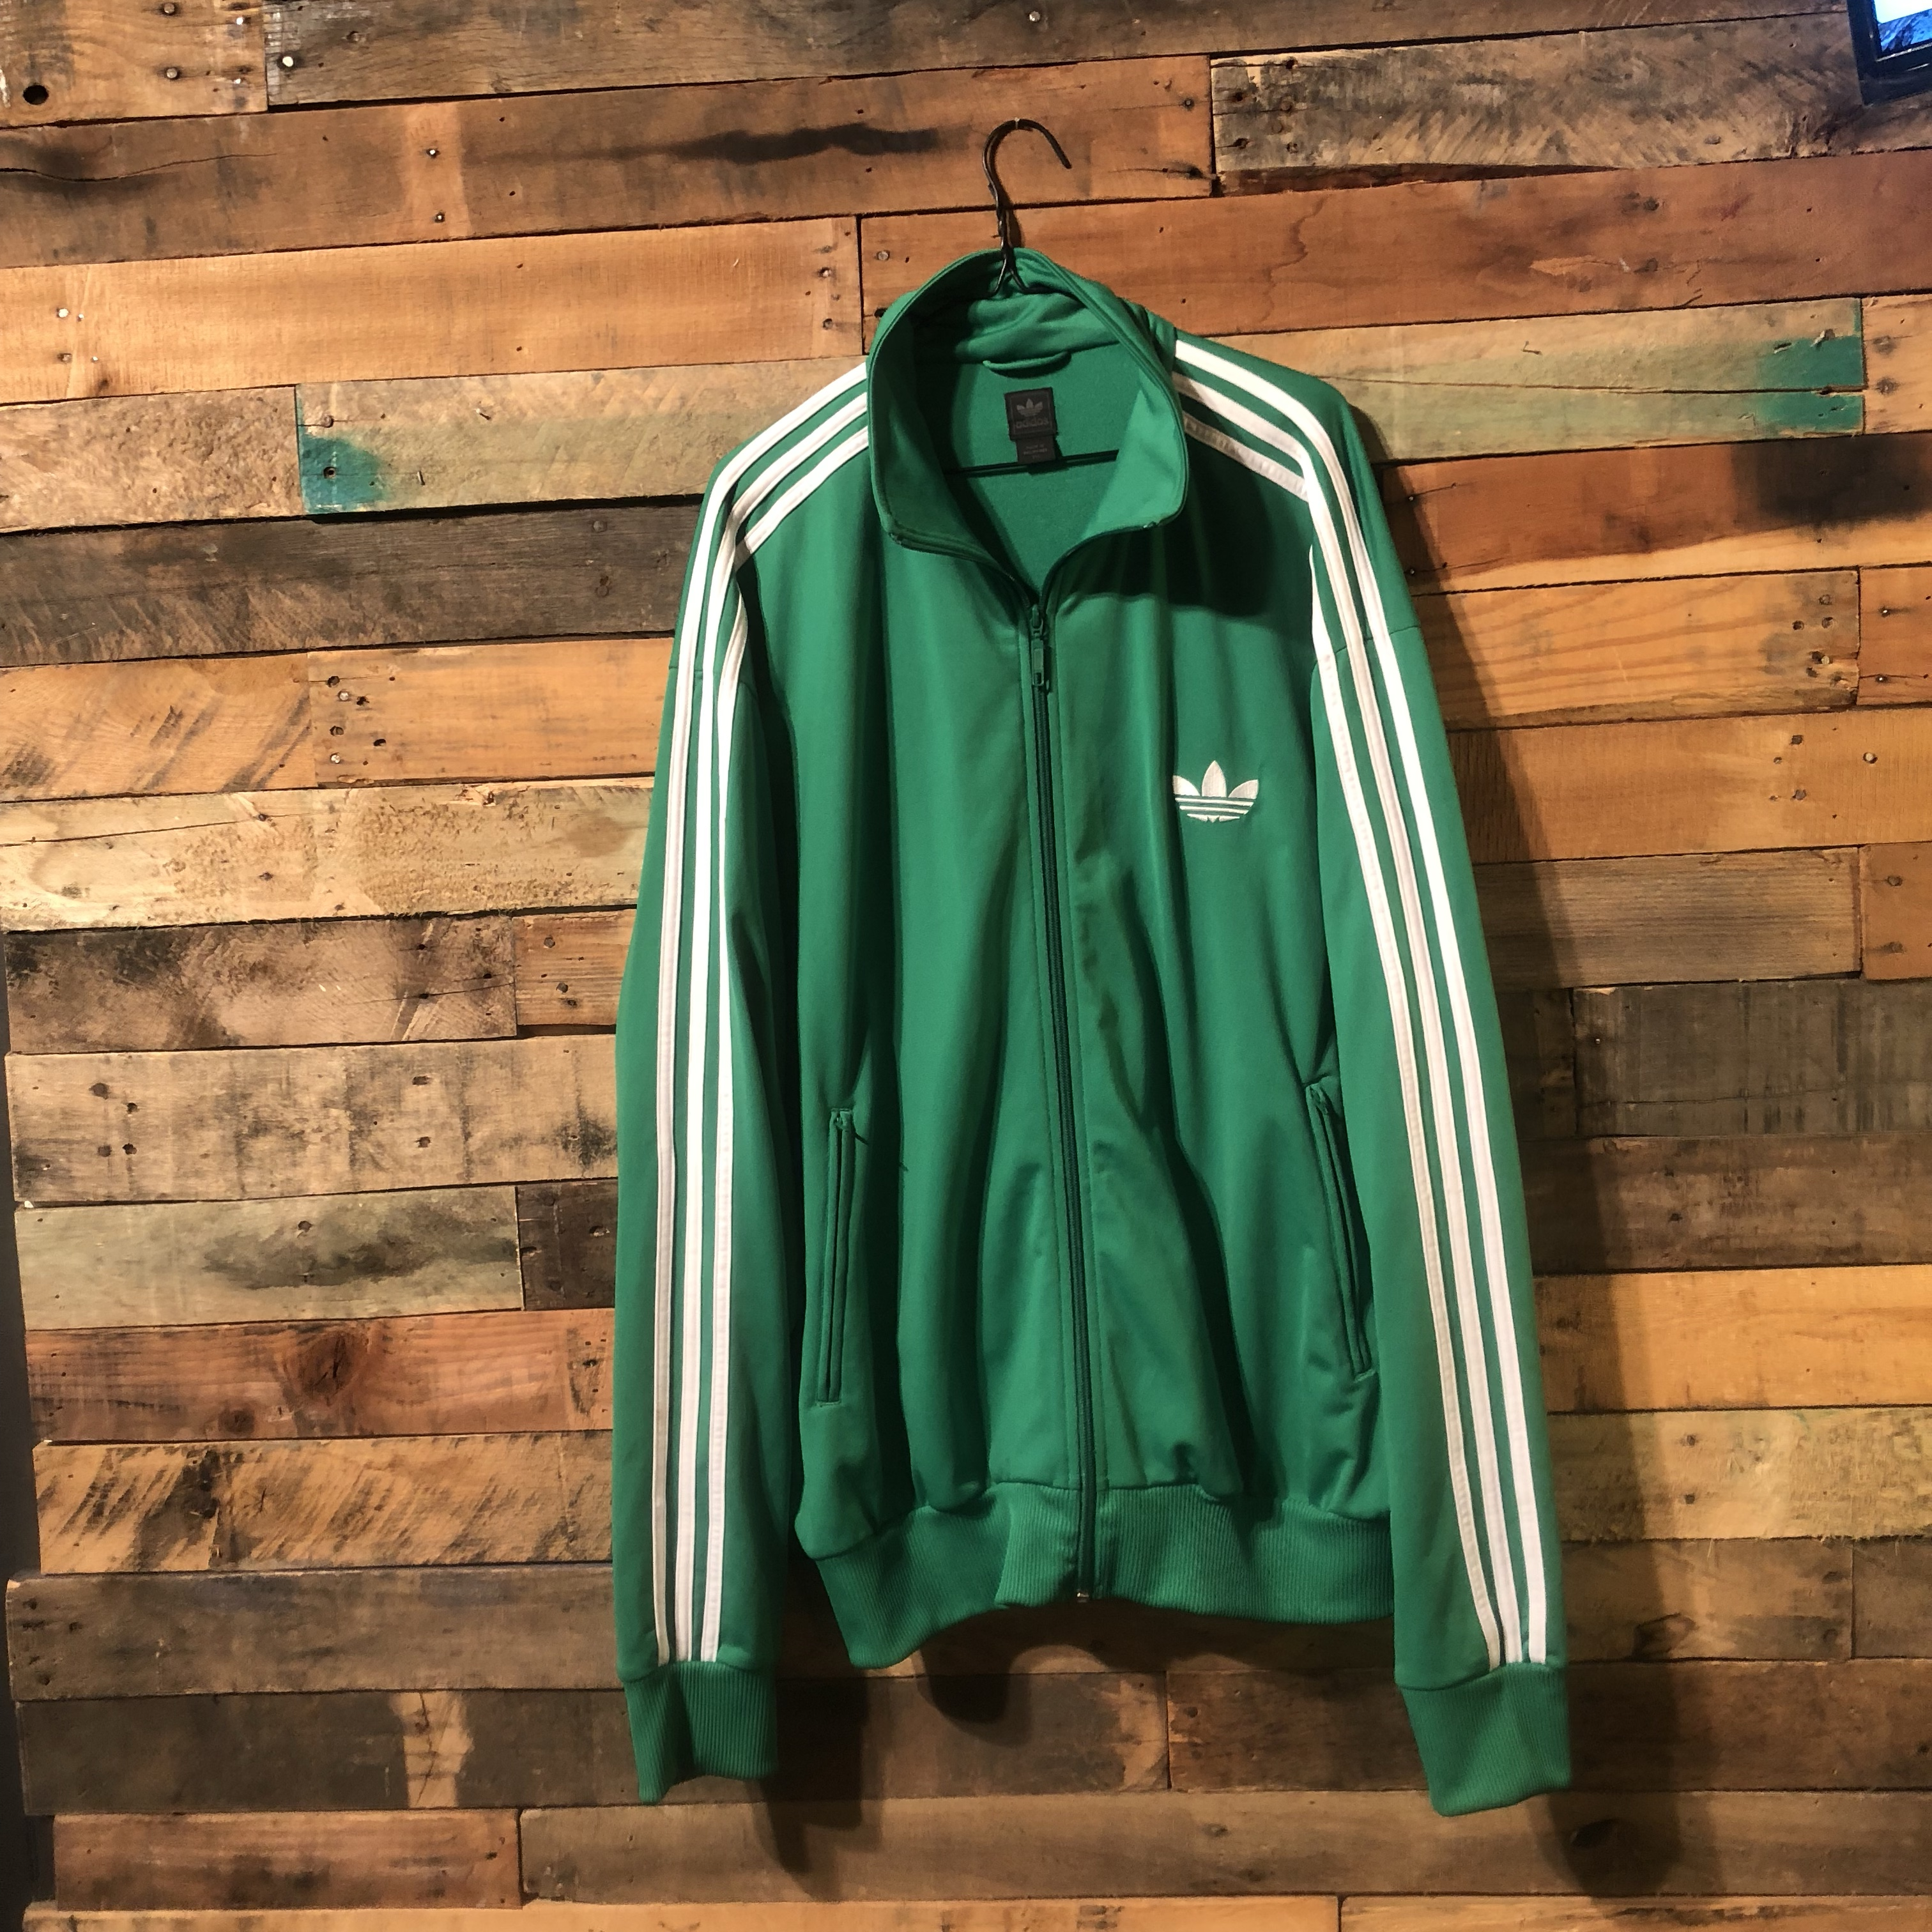 Vintage 1980's Adidas track jacket with the Depop